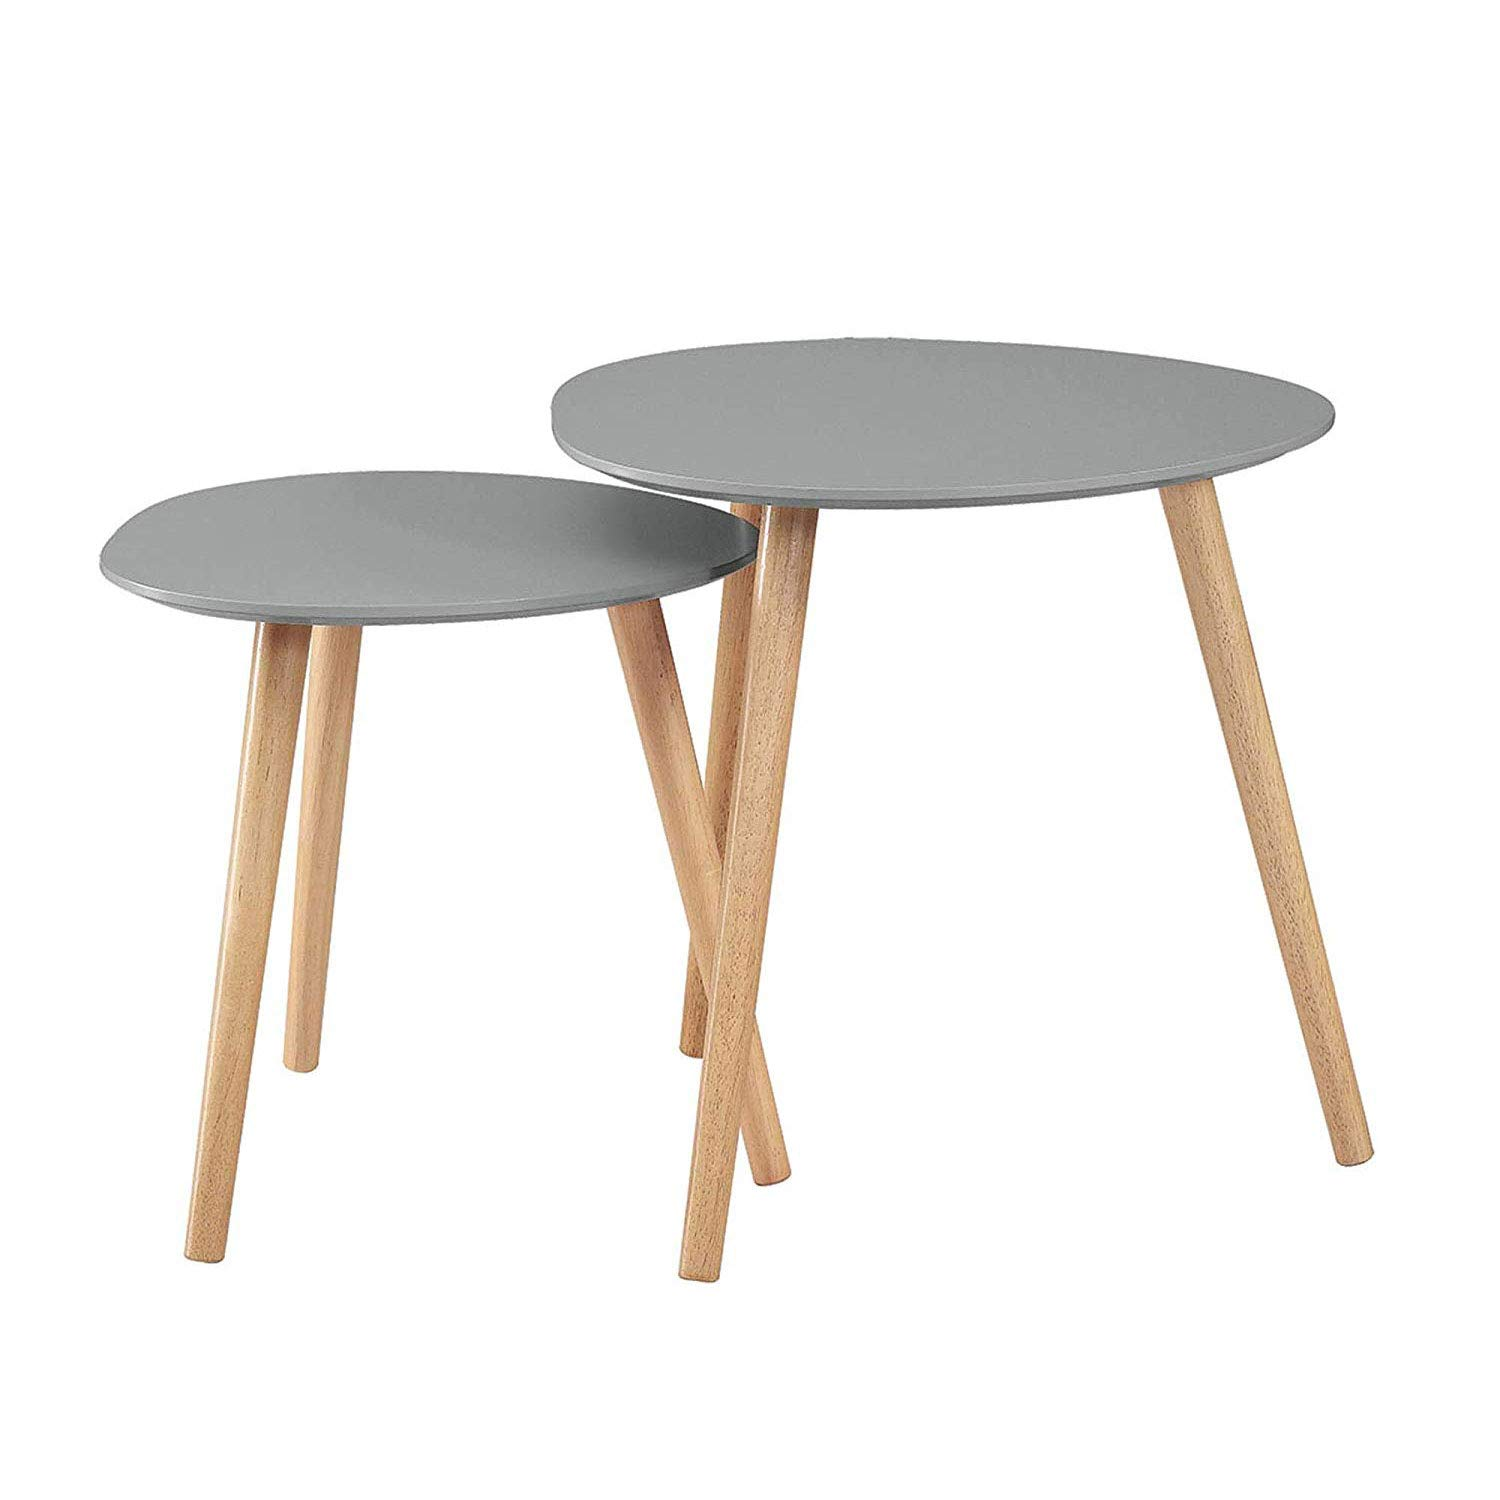 Convenience Concepts 203542GY Oslo Nesting End Tables, Gray/Light Oak, by Convenience Concepts